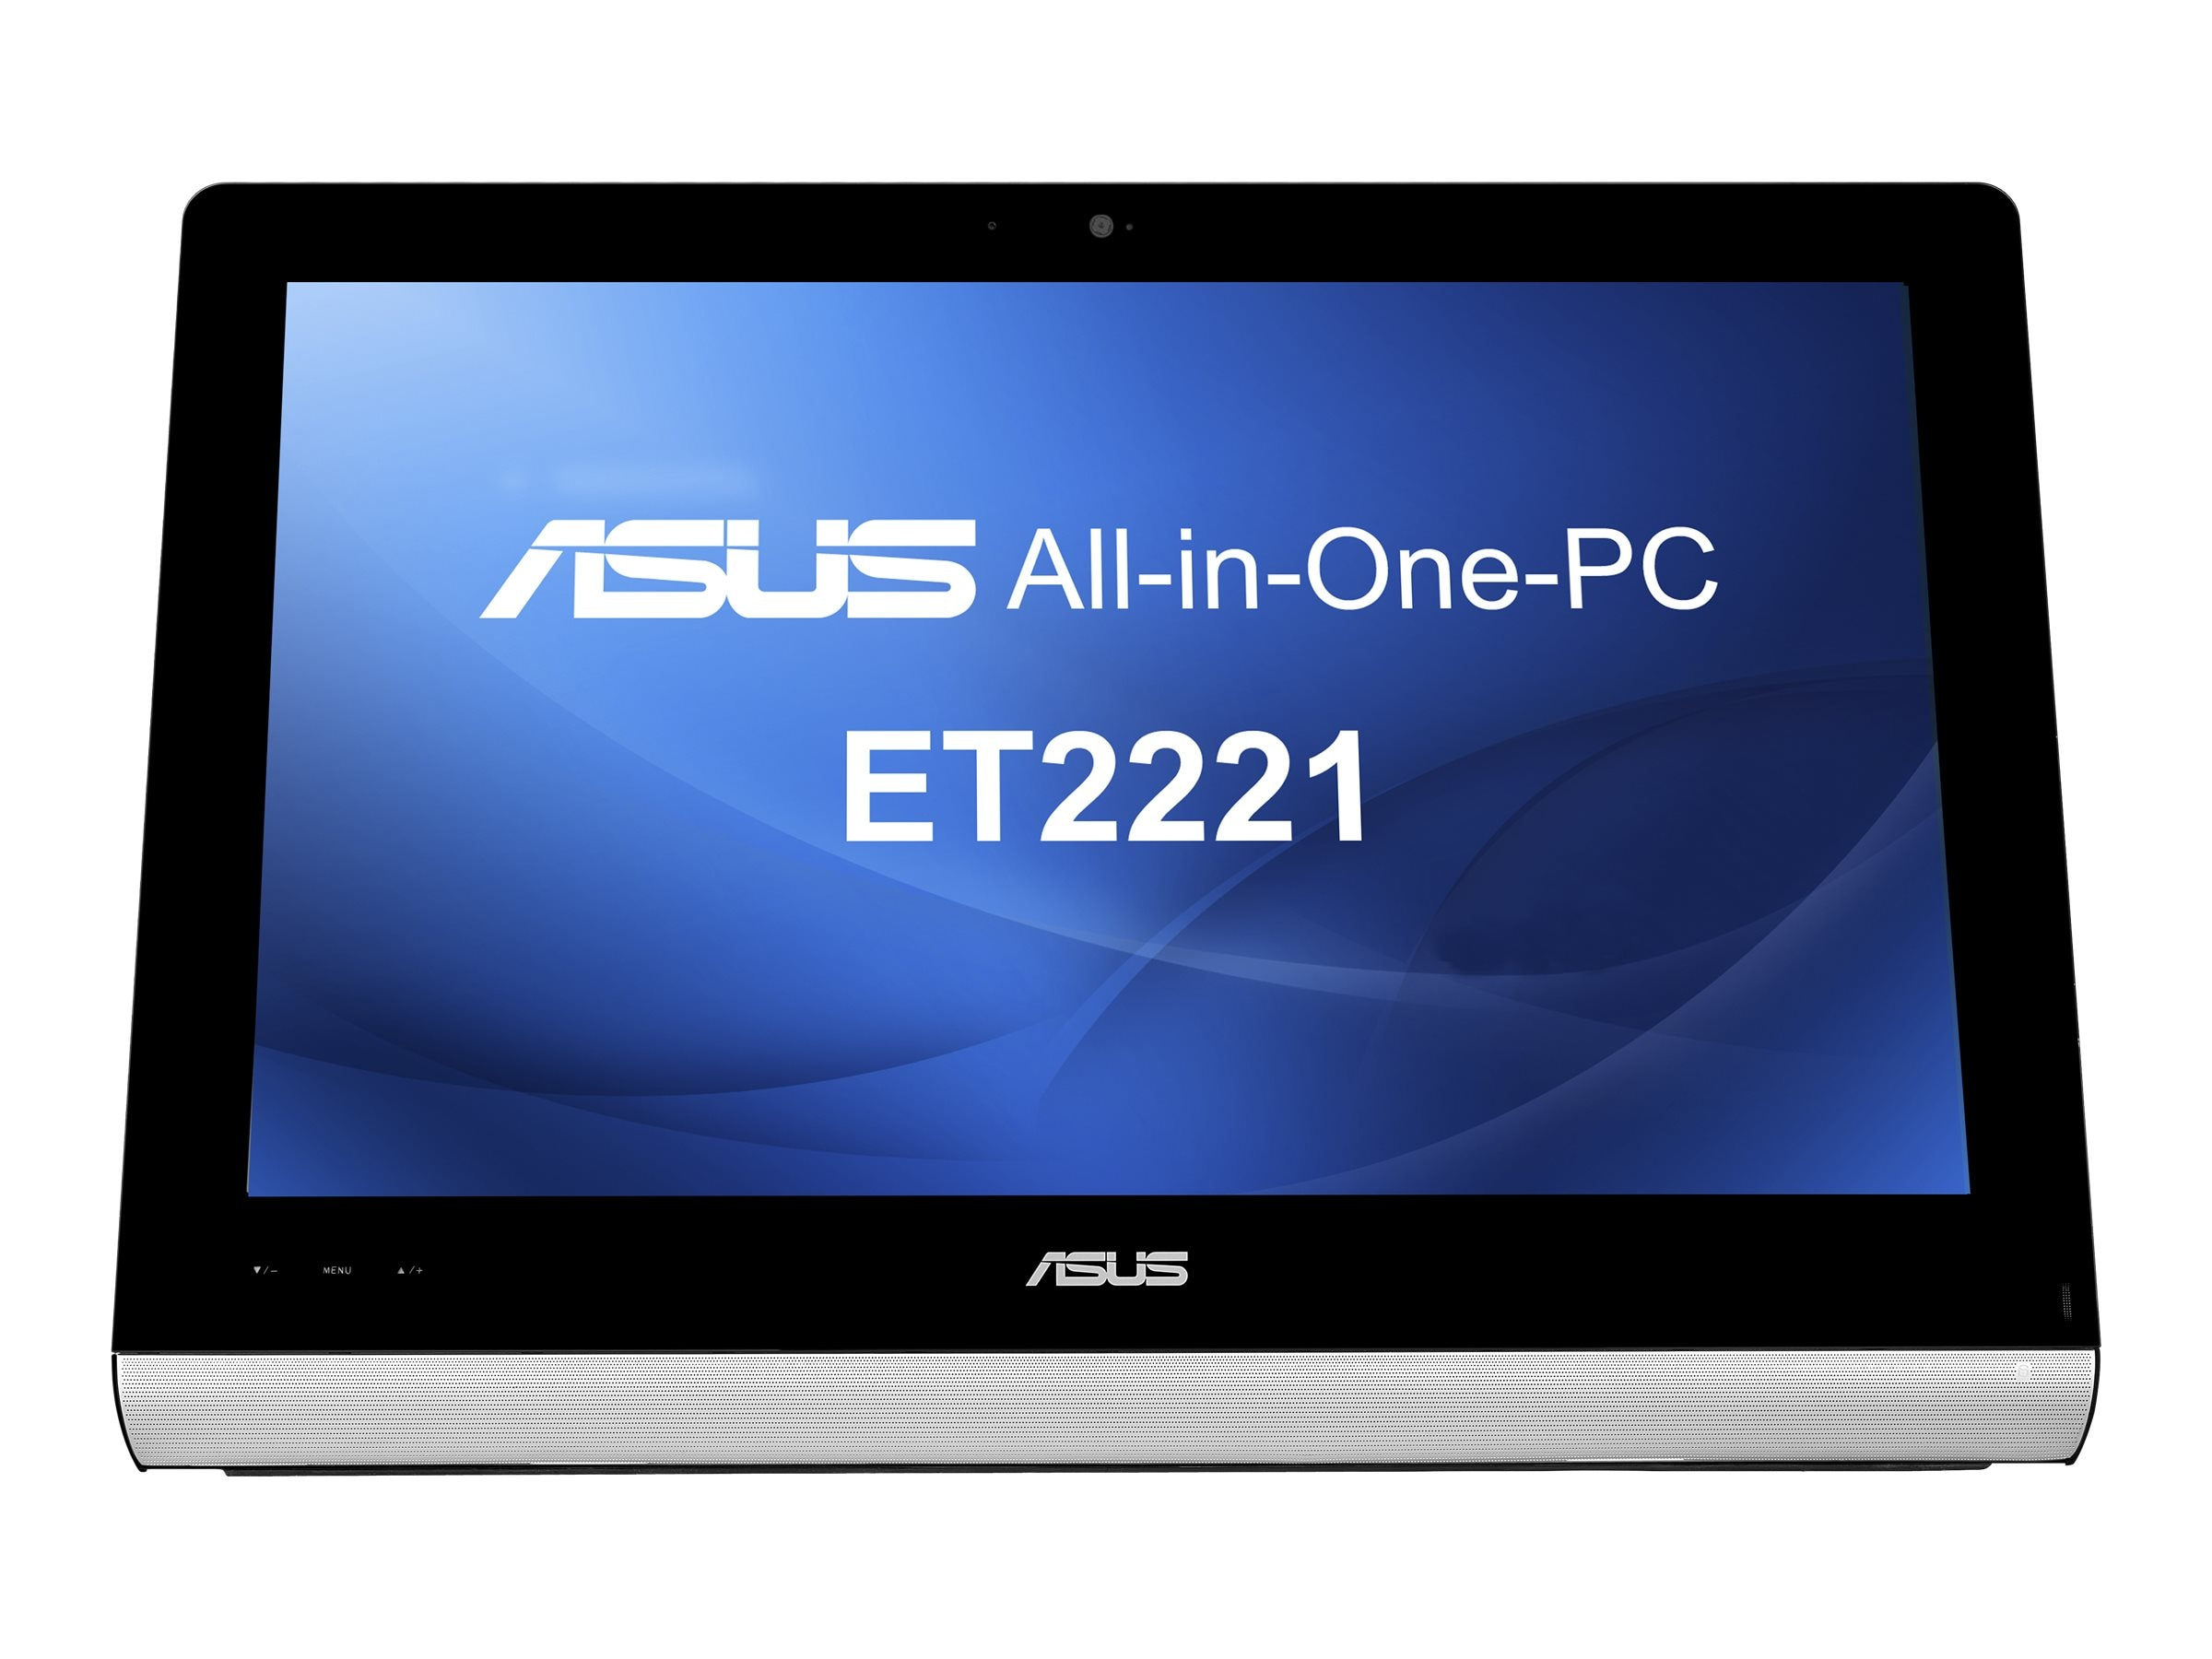 Asus ET2221 AIO PC with Multi-Touch, ET2221-01, 16105712, Desktops - All-in-One